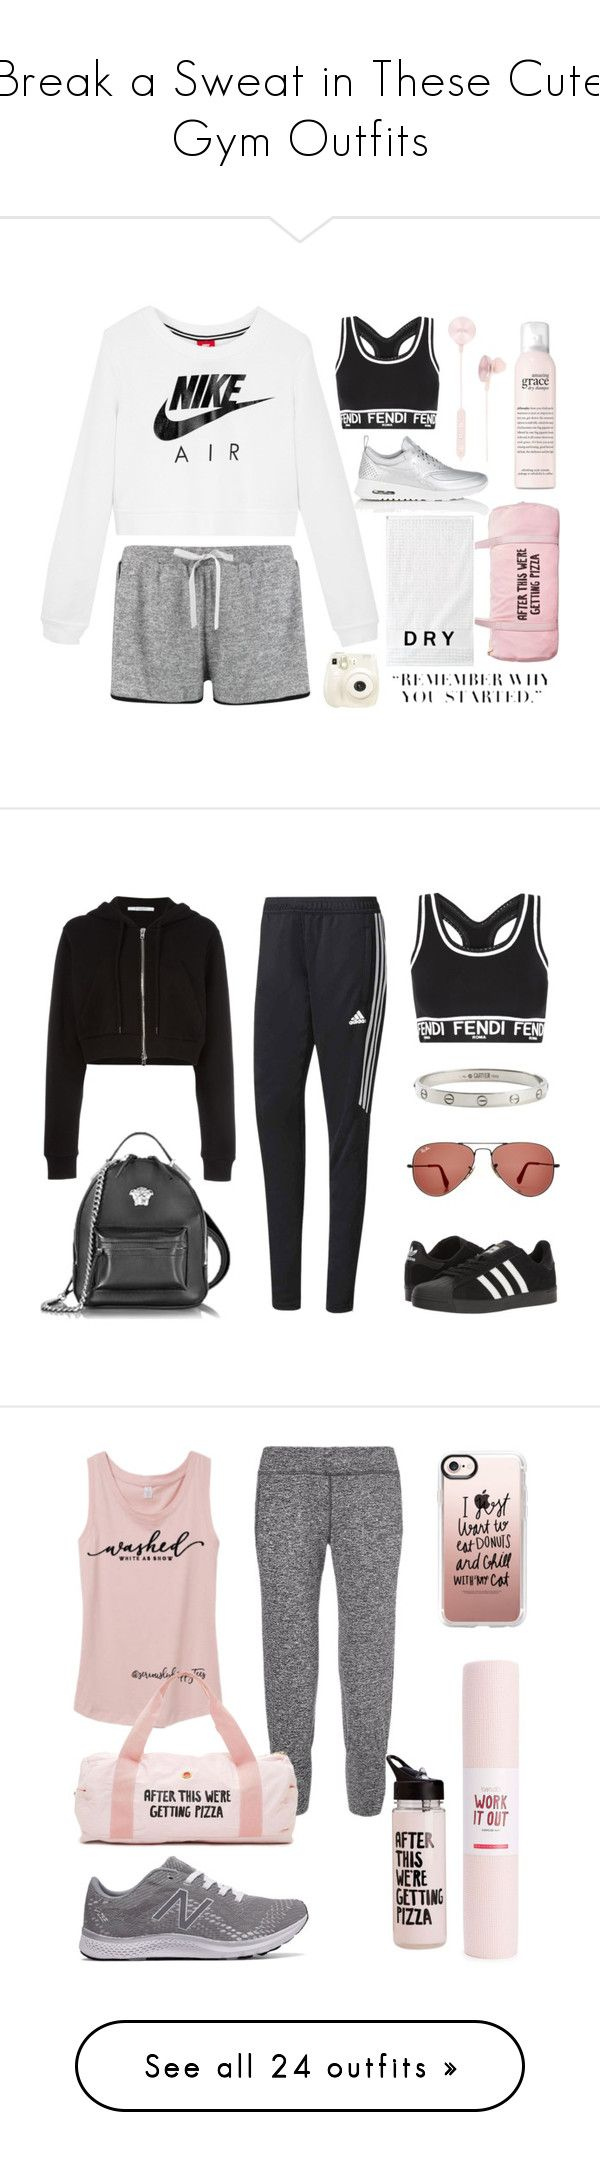 """""""Break a Sweat in These Cute Gym Outfits"""" by polyvore-editorial ❤ liked on Polyvore featuring waystowear, gymoutfits, NIKE, Boohoo, Fendi, i.am+, philosophy, ban.do, DKNY and Fujifilm"""